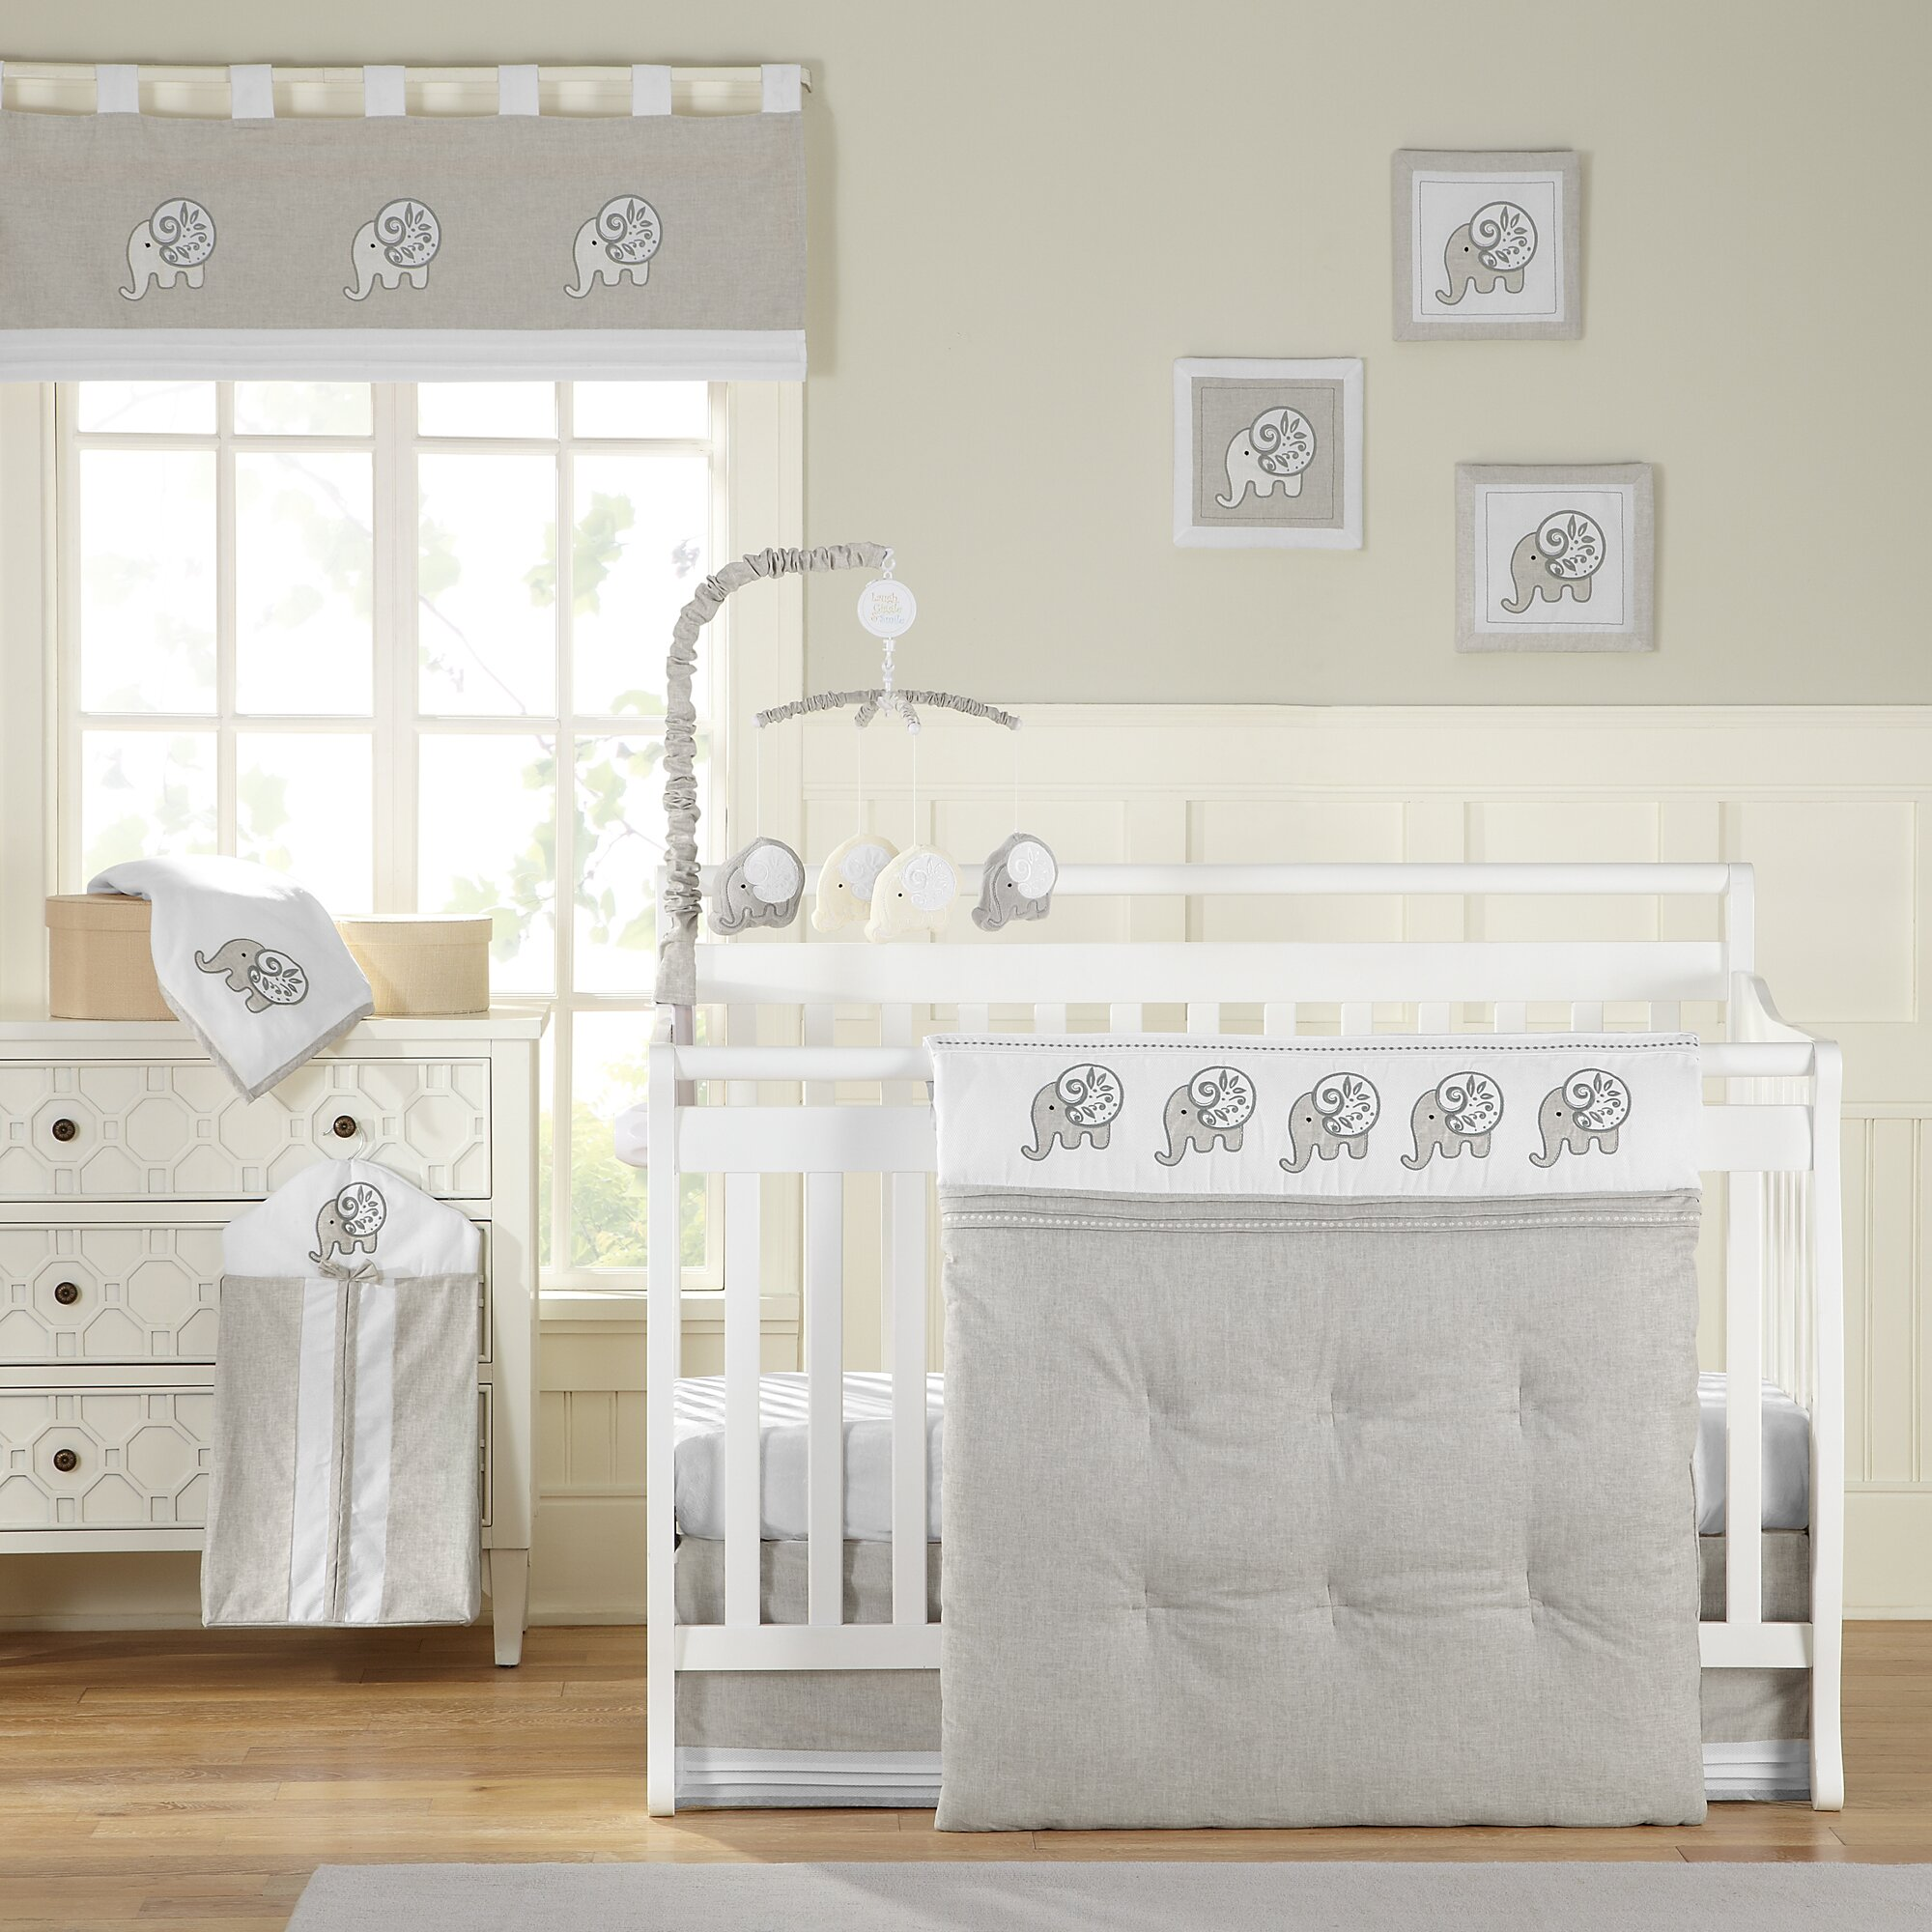 Best crib sheets for baby - Elephant Chic 11 Piece Crib Bedding Set